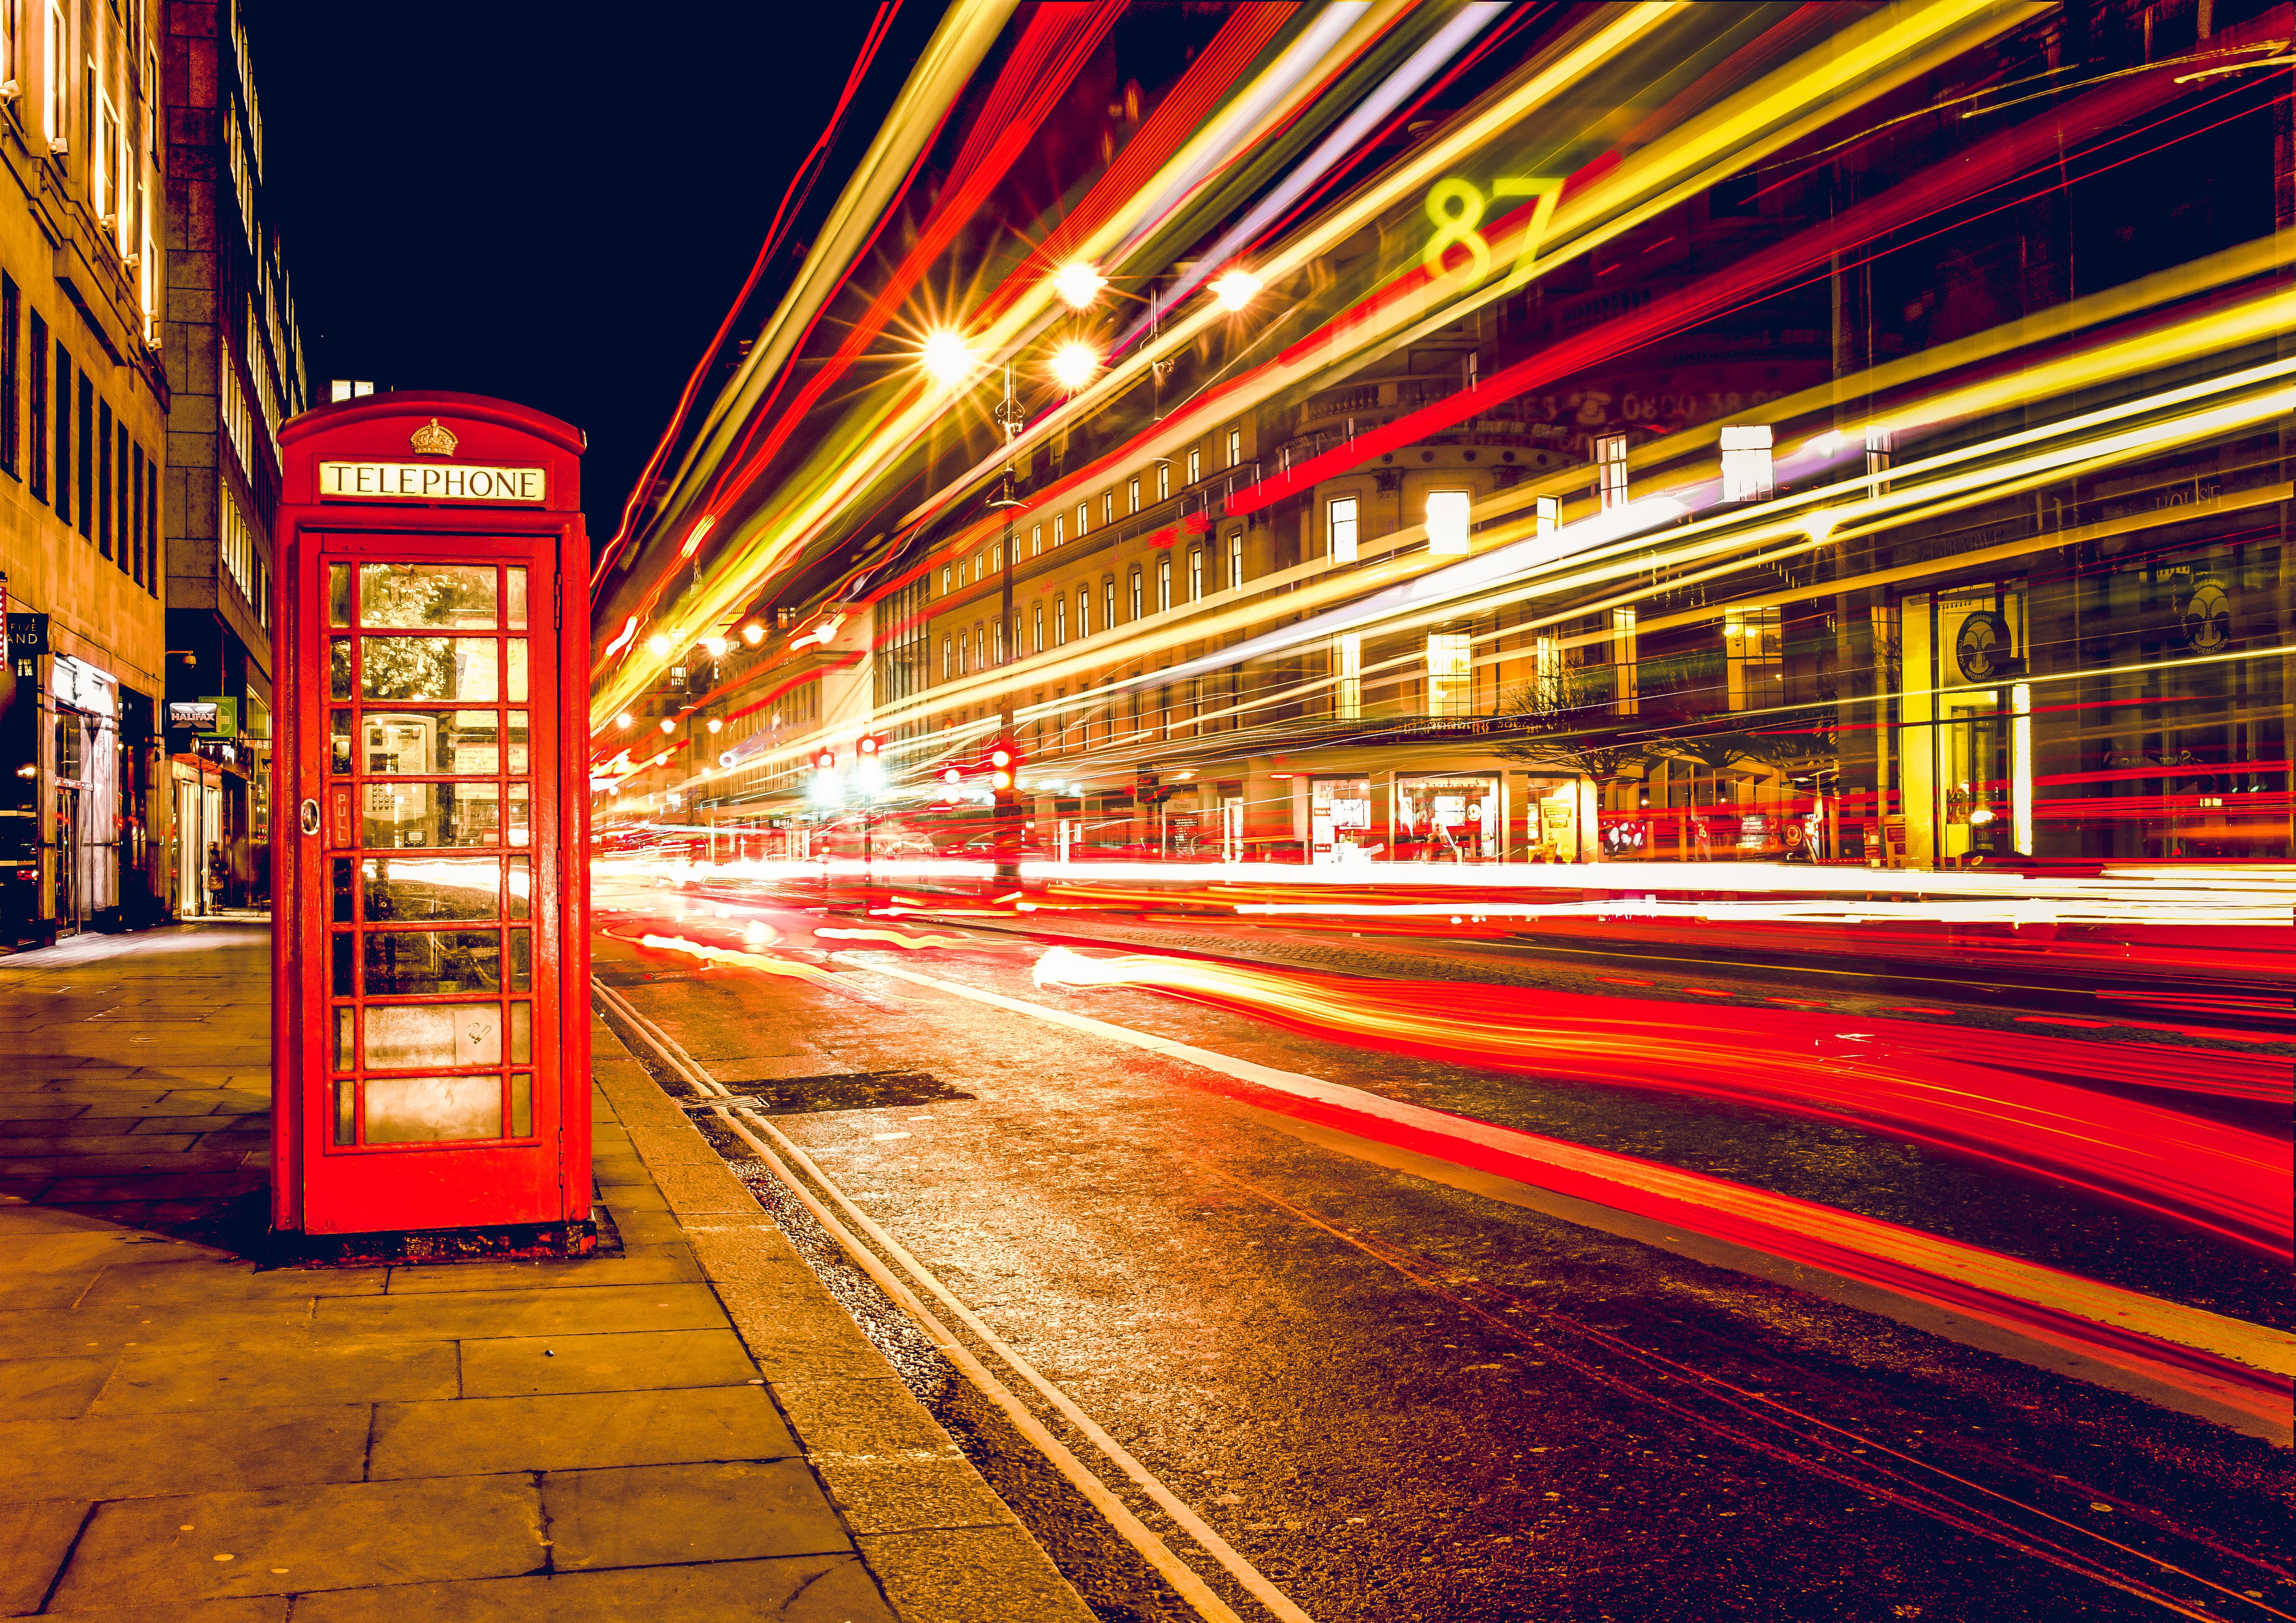 Time Lapse Photography of Phone Booth